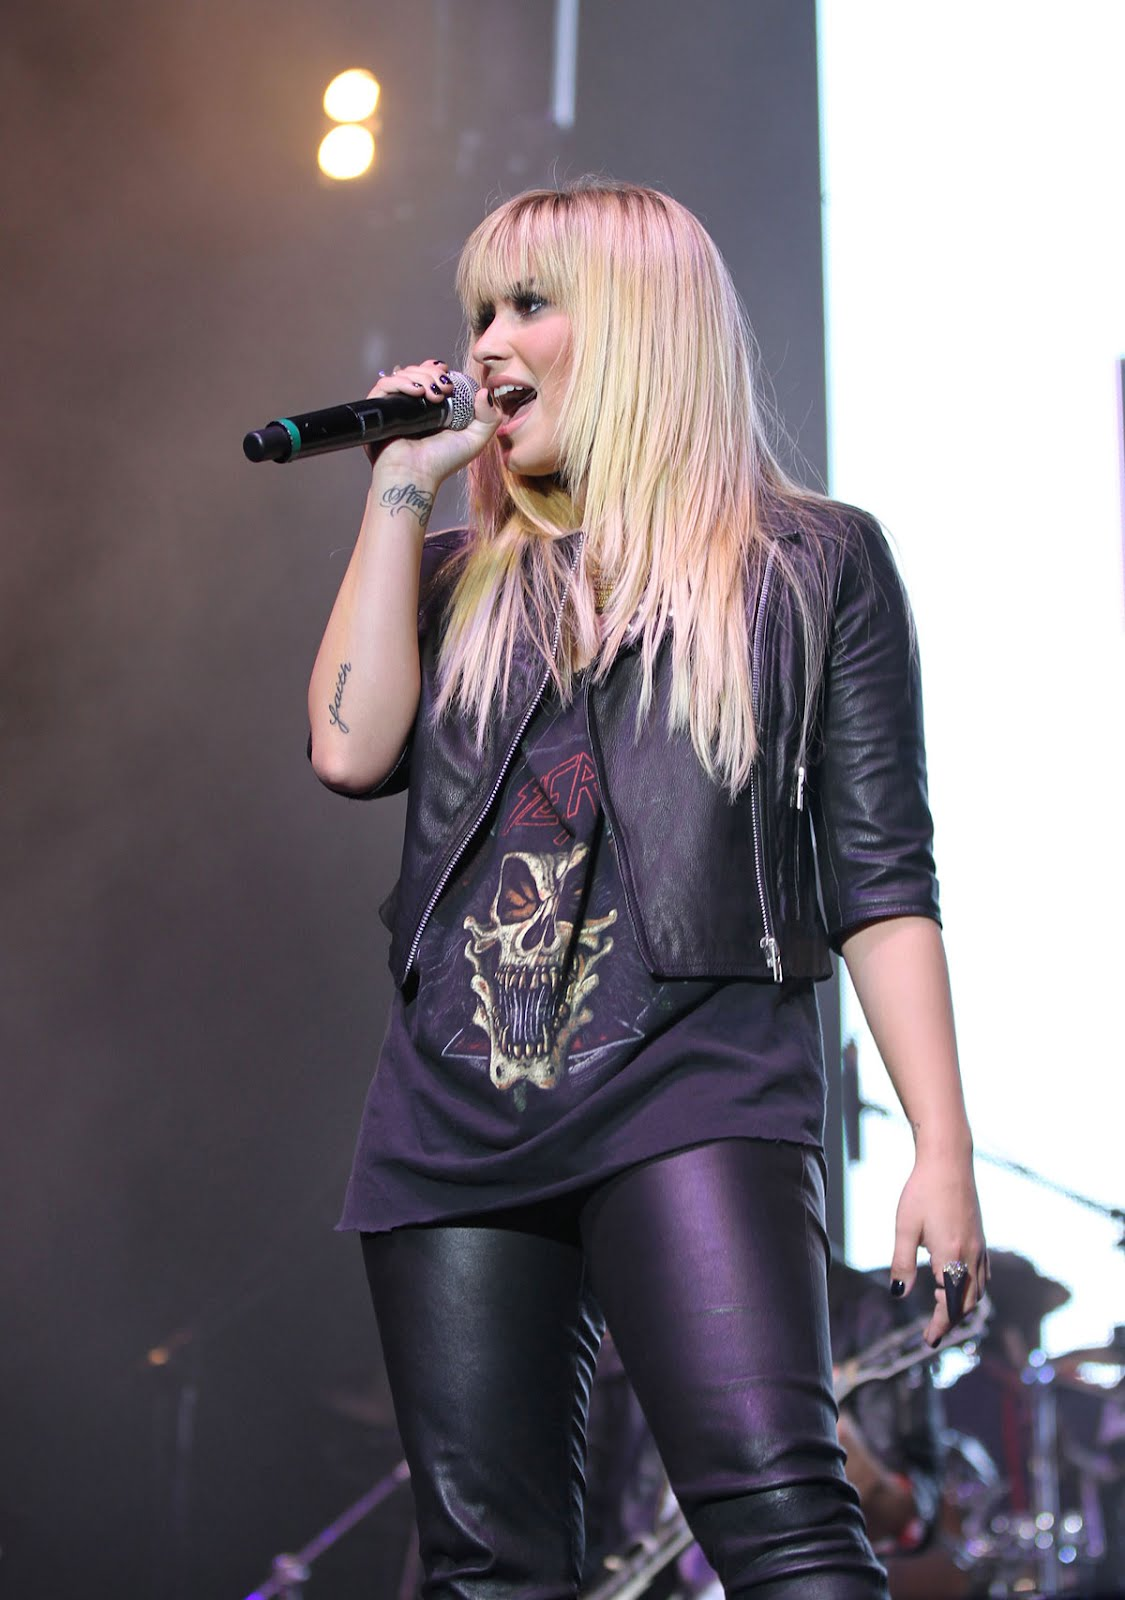 http://4.bp.blogspot.com/-H1DZ1Fclu54/UG2buno-d9I/AAAAAAAADSs/6giDau2FcUk/s1600/DEMI-LOVATO-in-Leather-Pants-Performing-at-2012-Z-Festival-in-Sao-Paulo-9.jpg